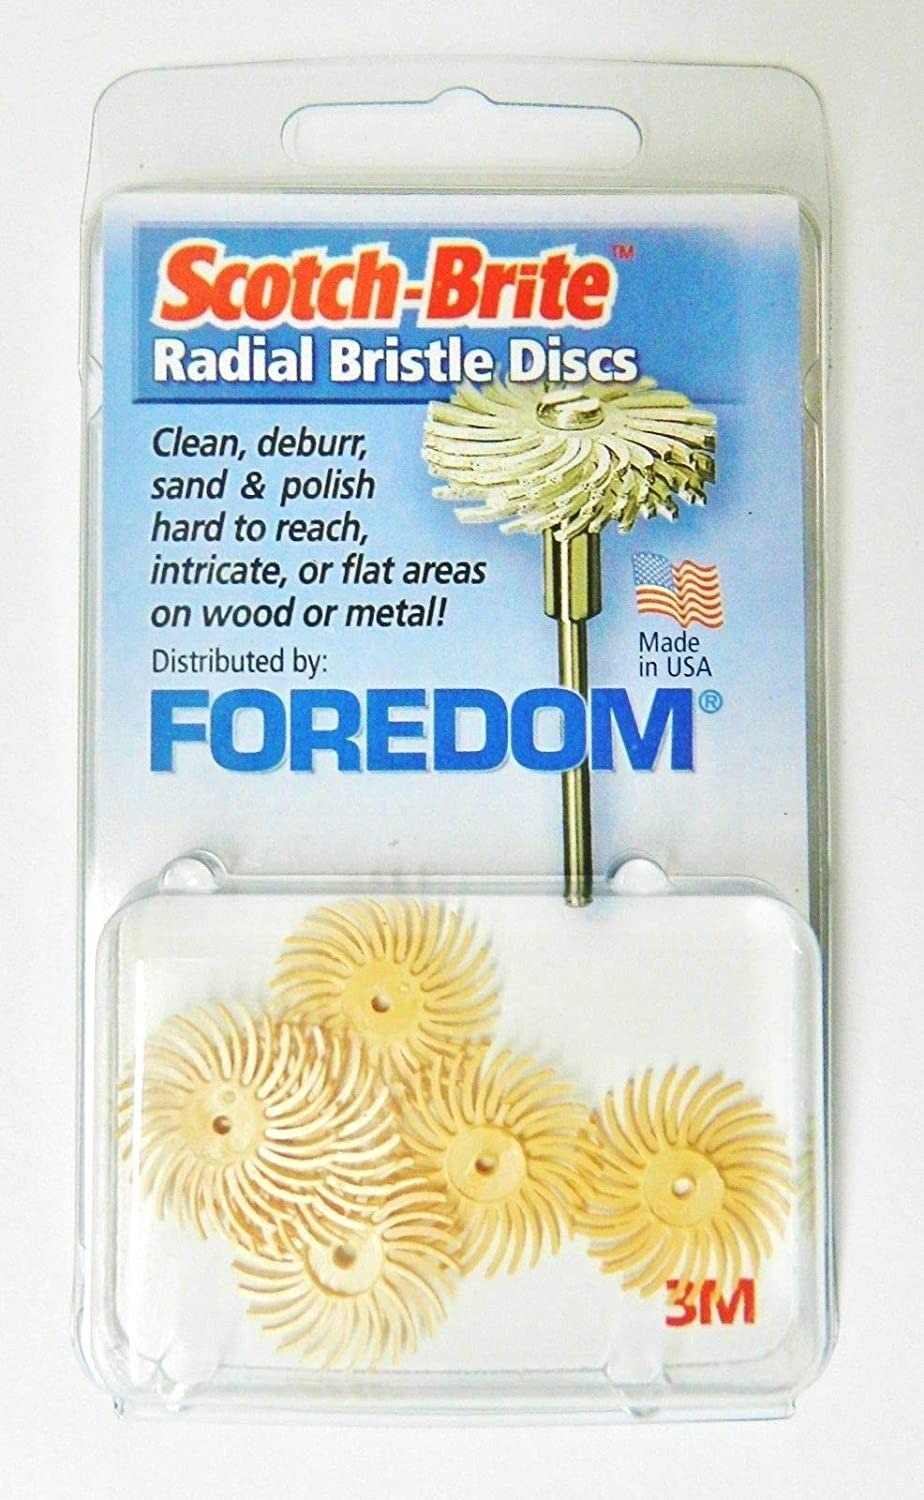 Foredom Radial Bristle Discs 6mic Grit Peach 3/4' - Pack of 6 3M Radial Brushes